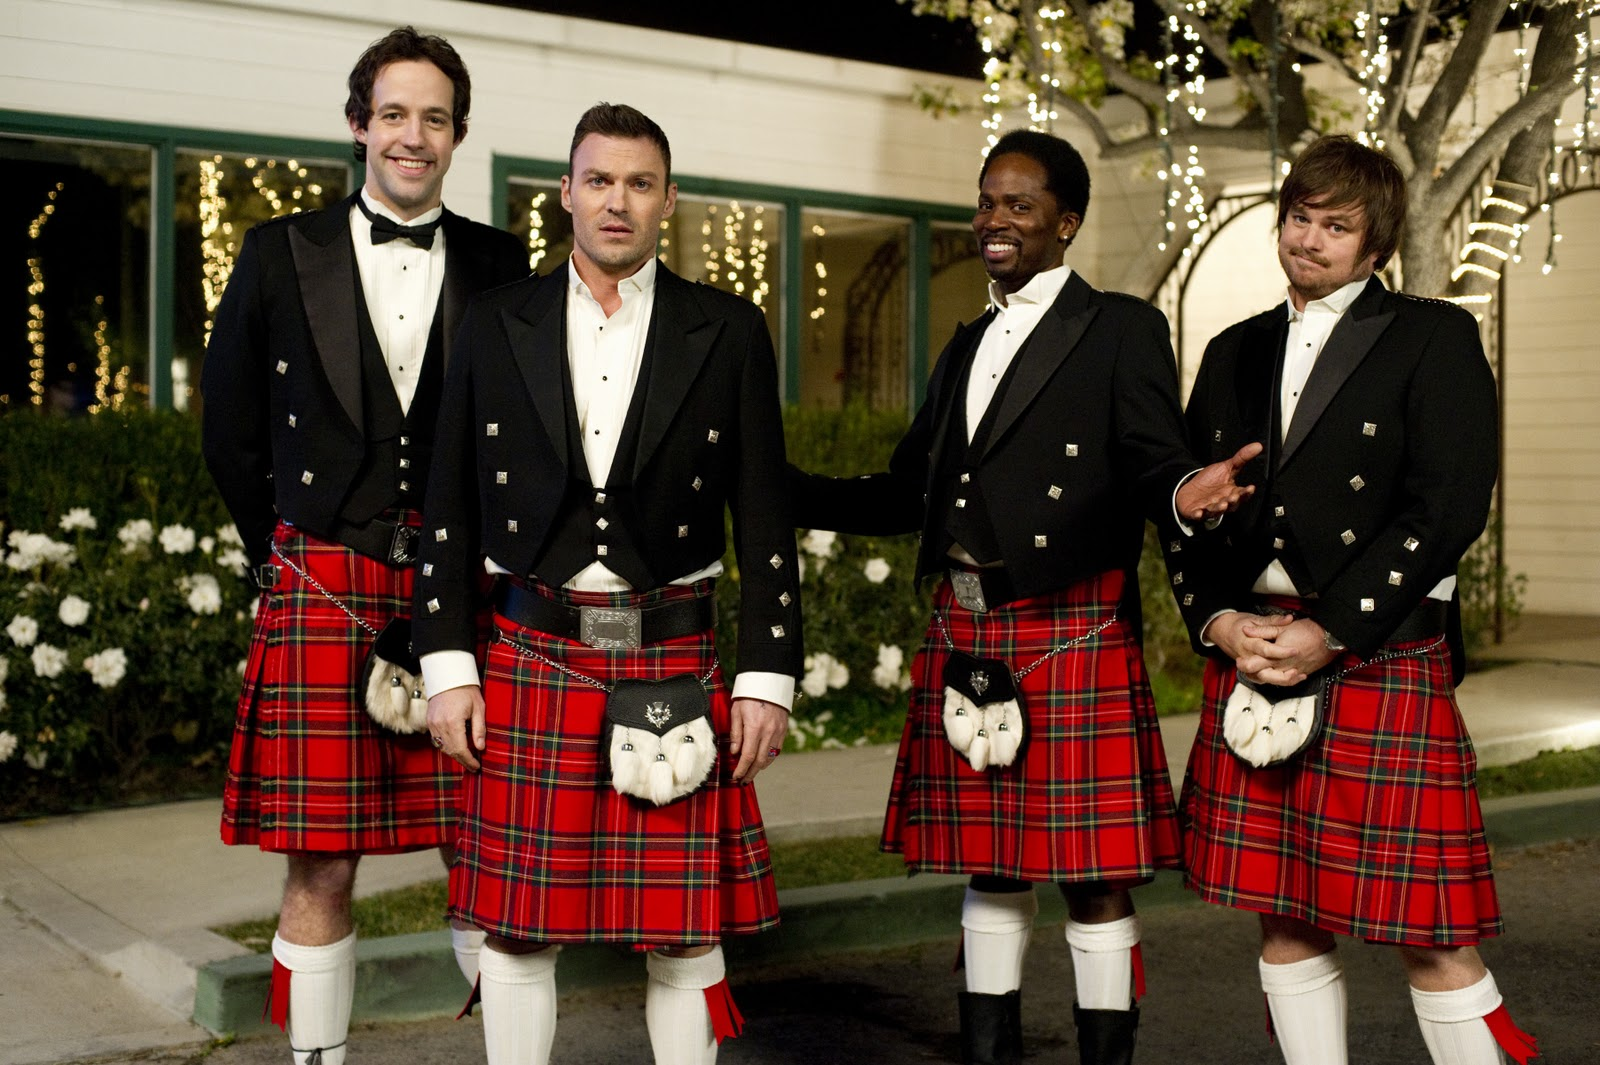 Guest Stars Appearing In TBS The Wedding Band